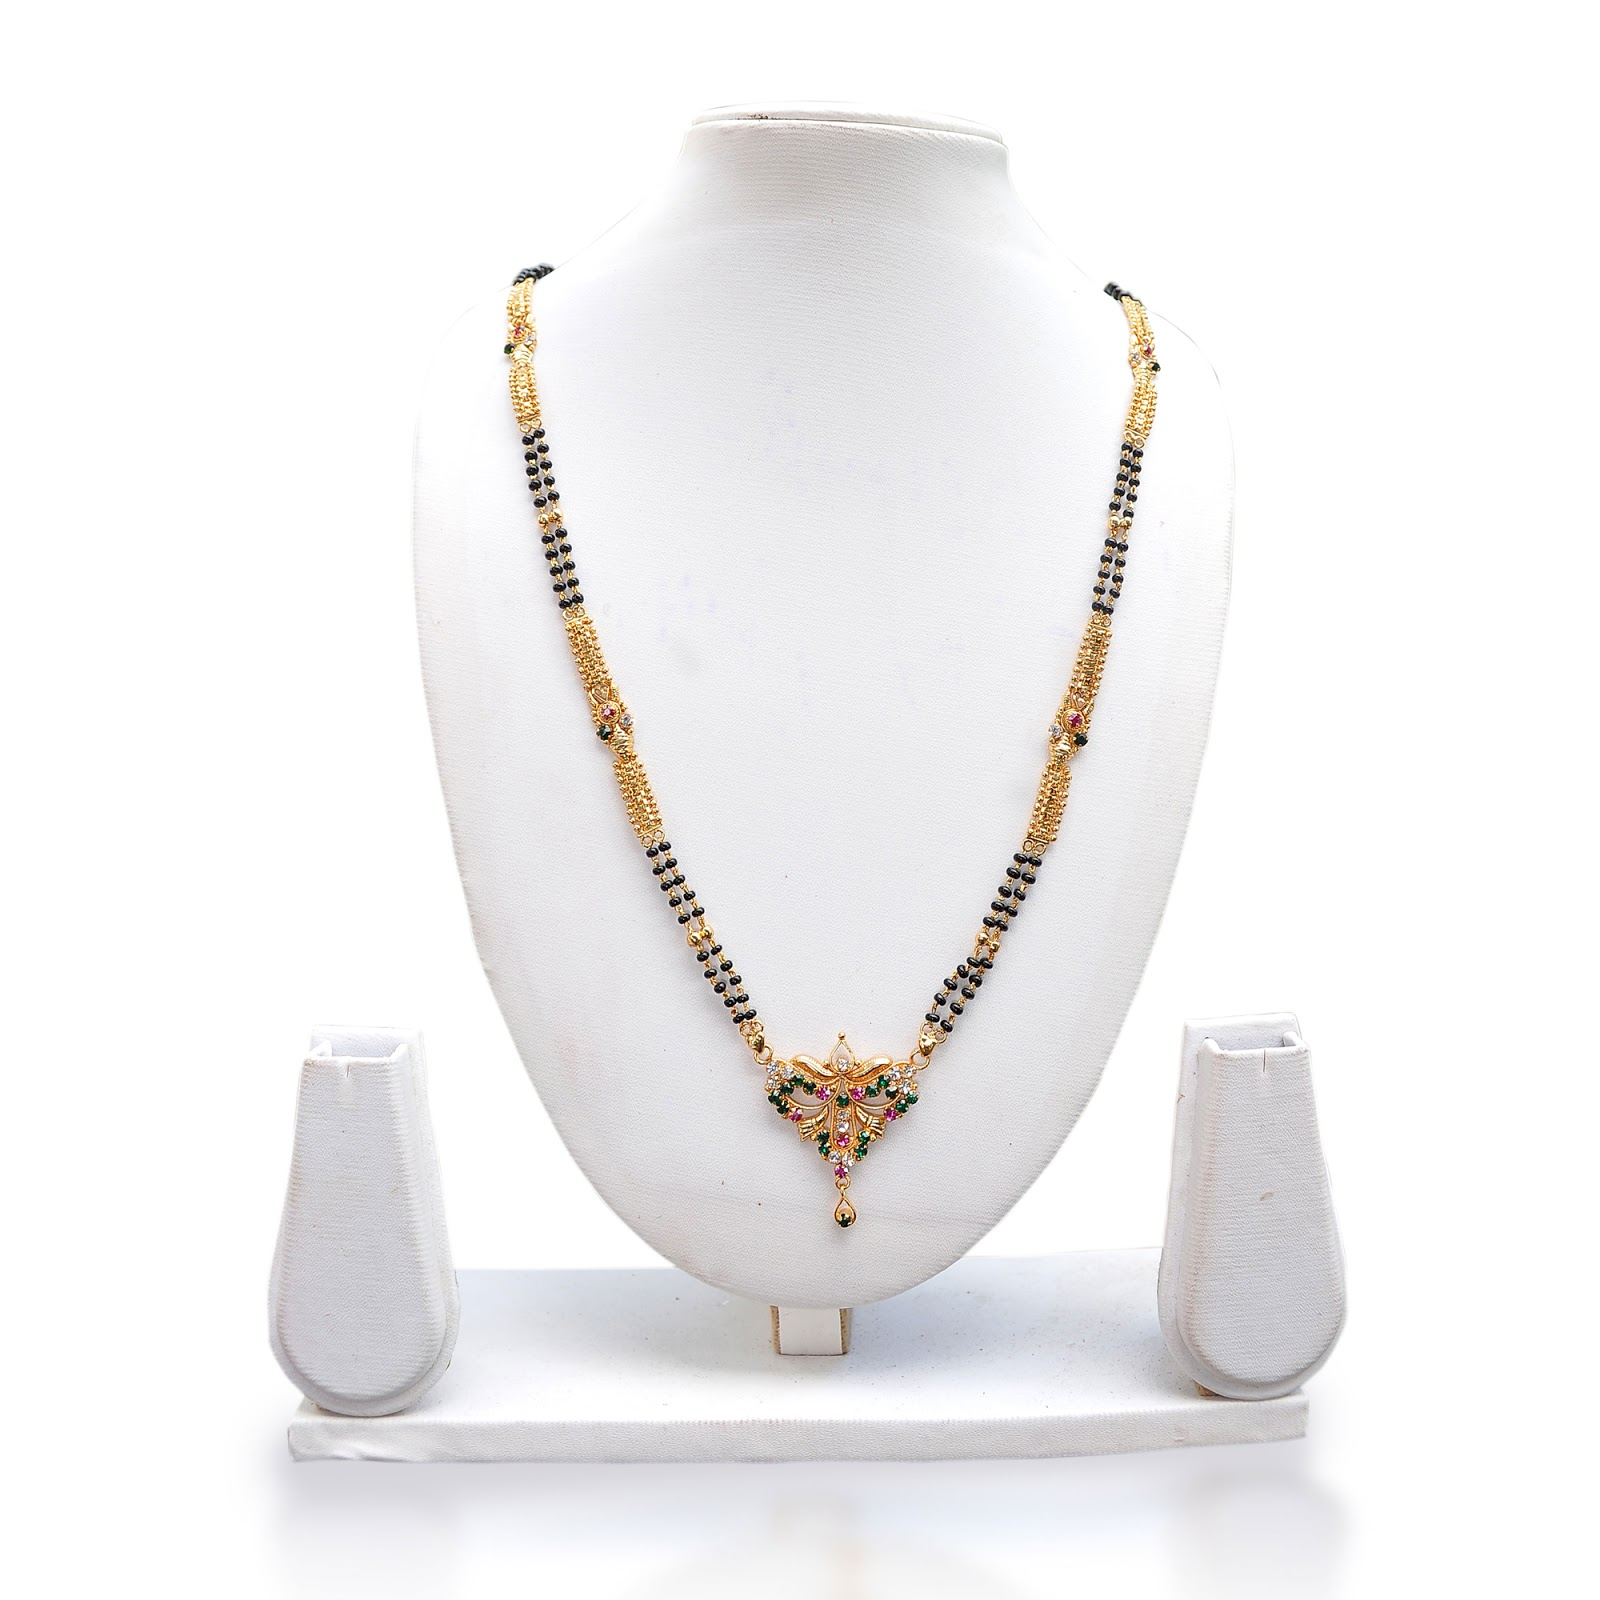 GANESH GROUP OF BUSINESS: MANGALSUTRA OR BLACK BEADS BY GANESH GROUP